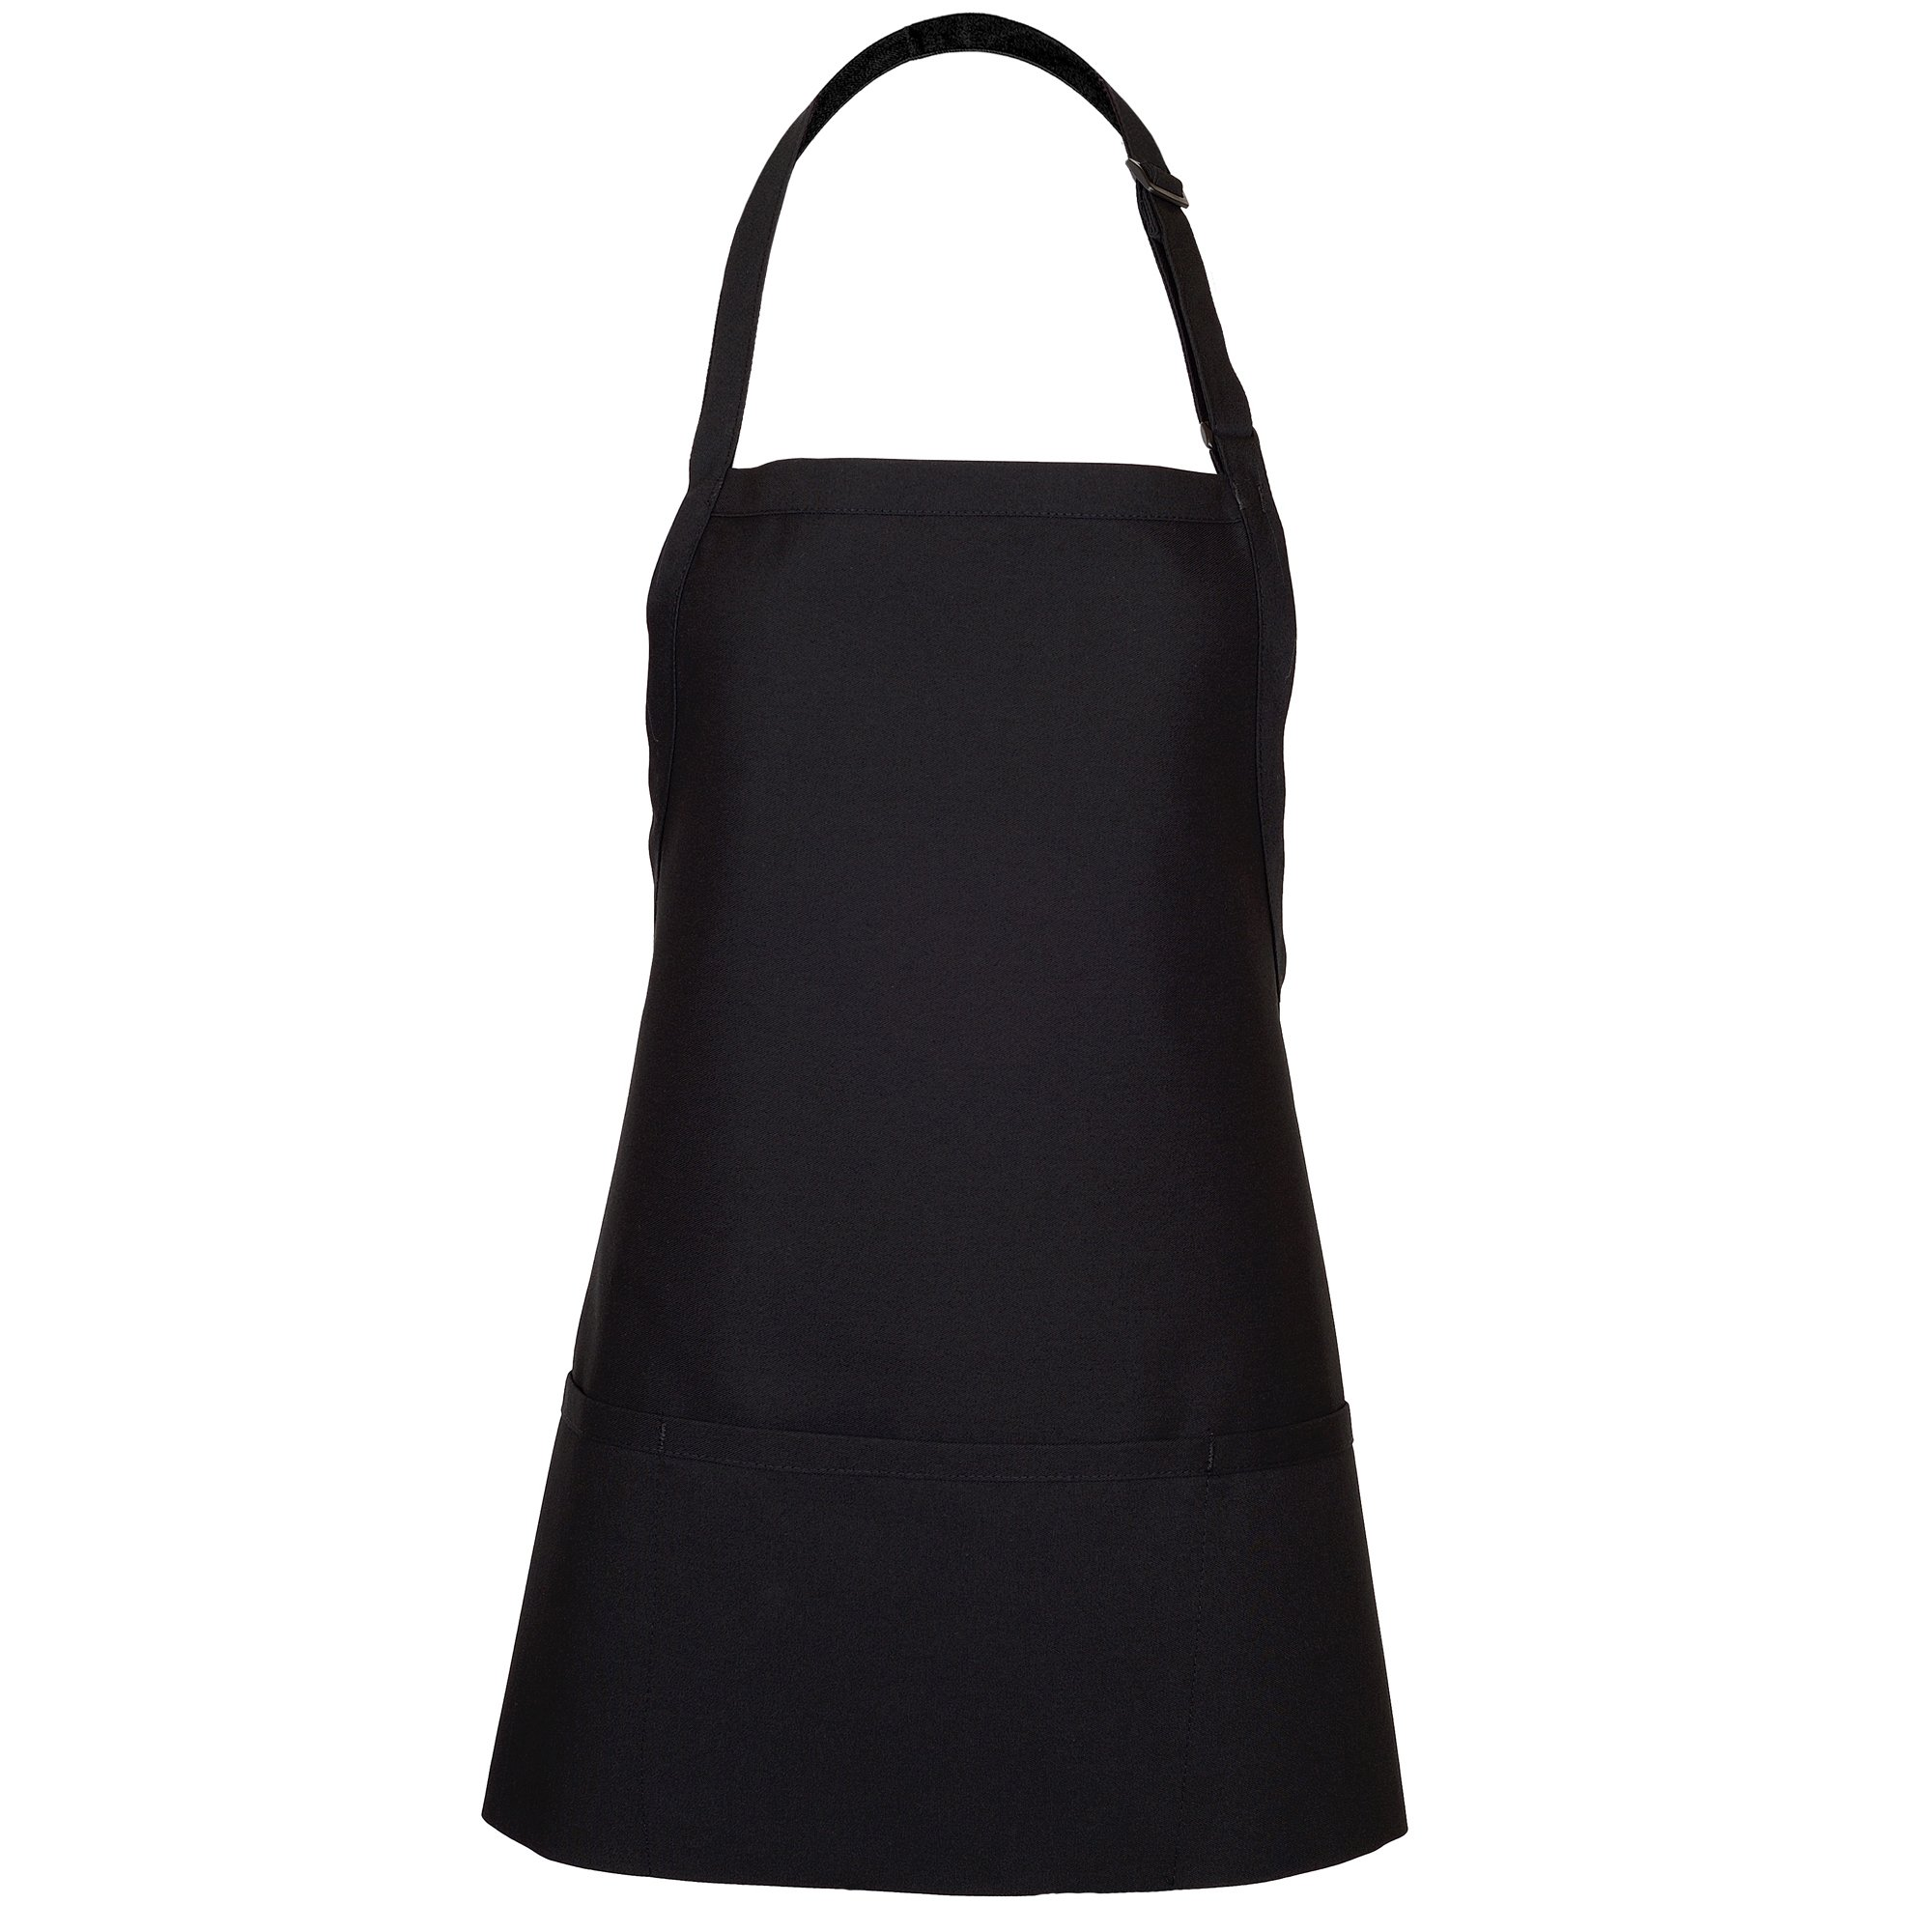 Fame Adult's Extra Large 3 Pocket Bib Apron-Black-XL